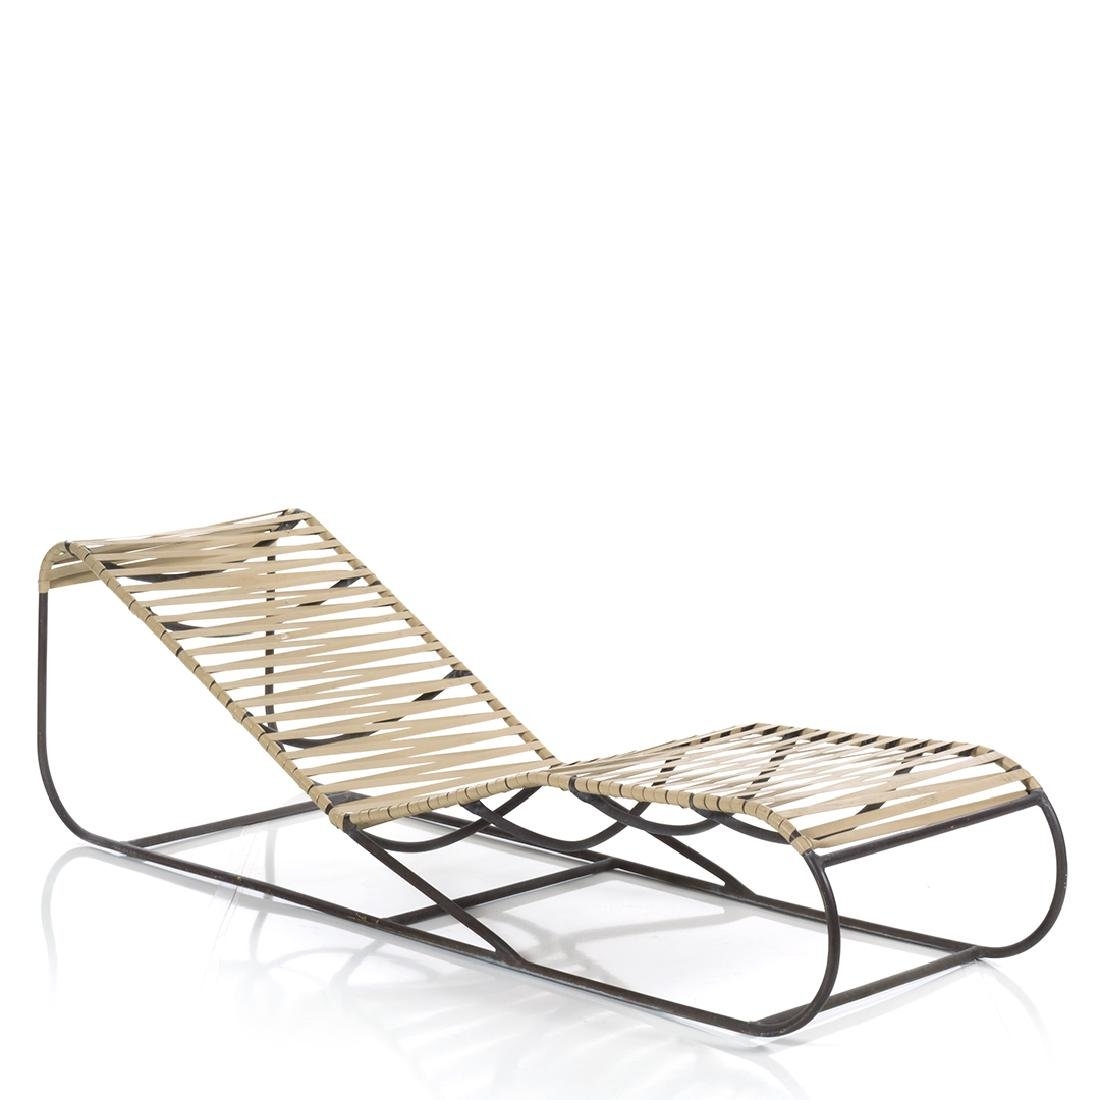 Kipp Stewart Bronze Chaise Lounges (2) - 4